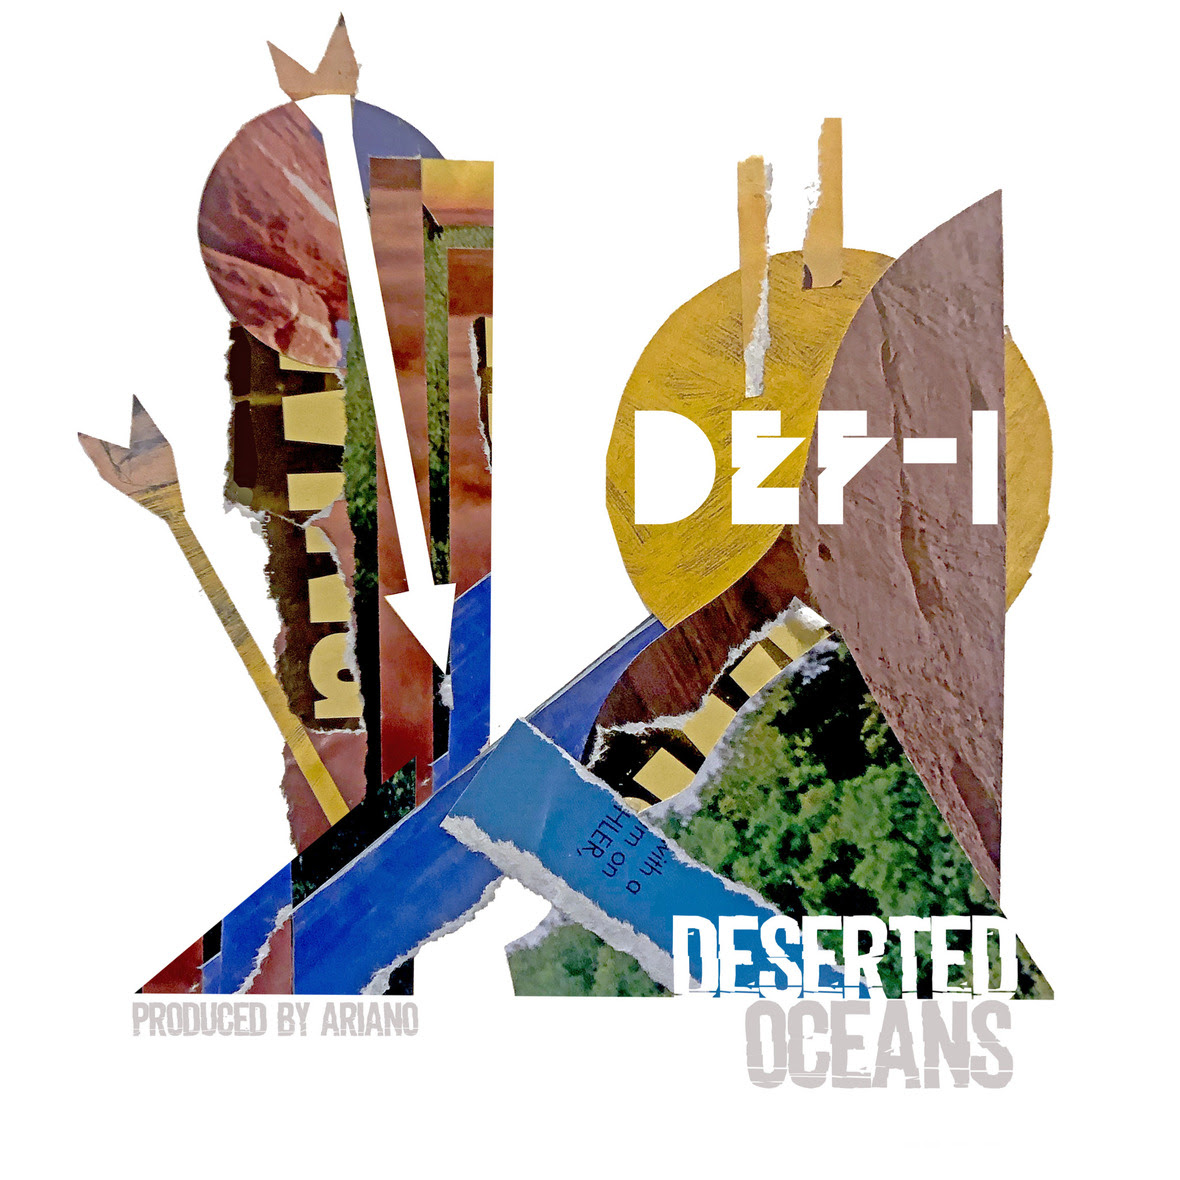 Def-I – Deserted Oceans (Produced by Ariano) [Album Stream]